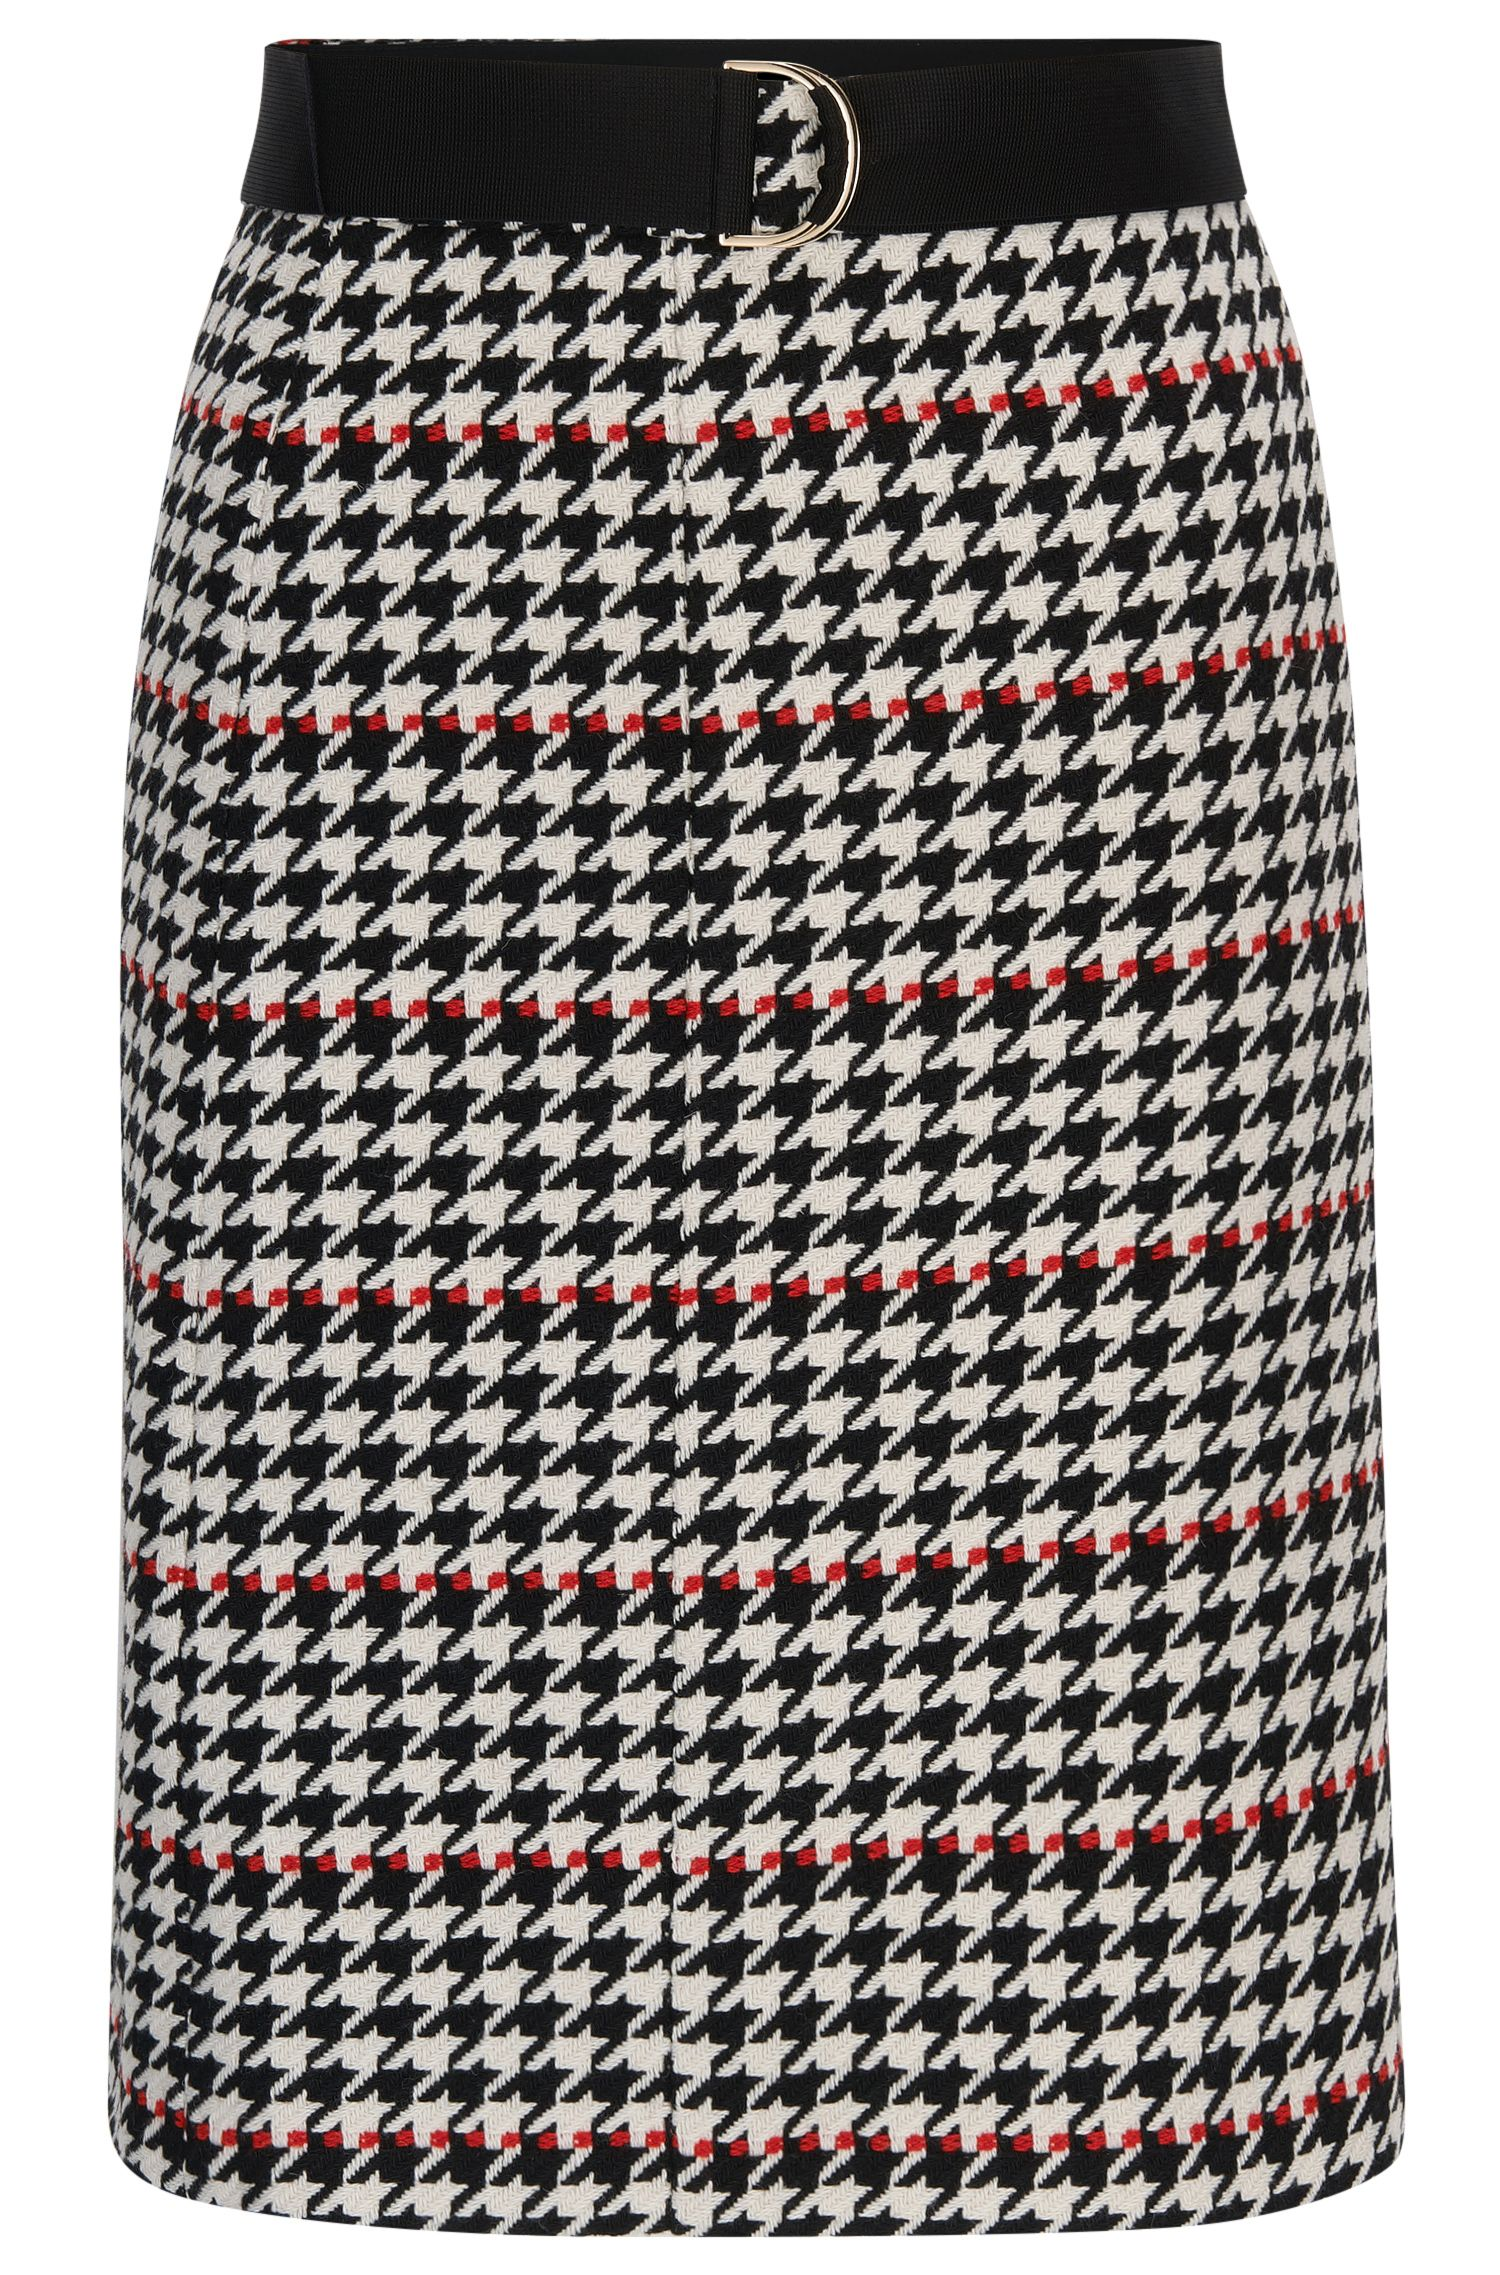 A-line skirt in houndstooth fabric